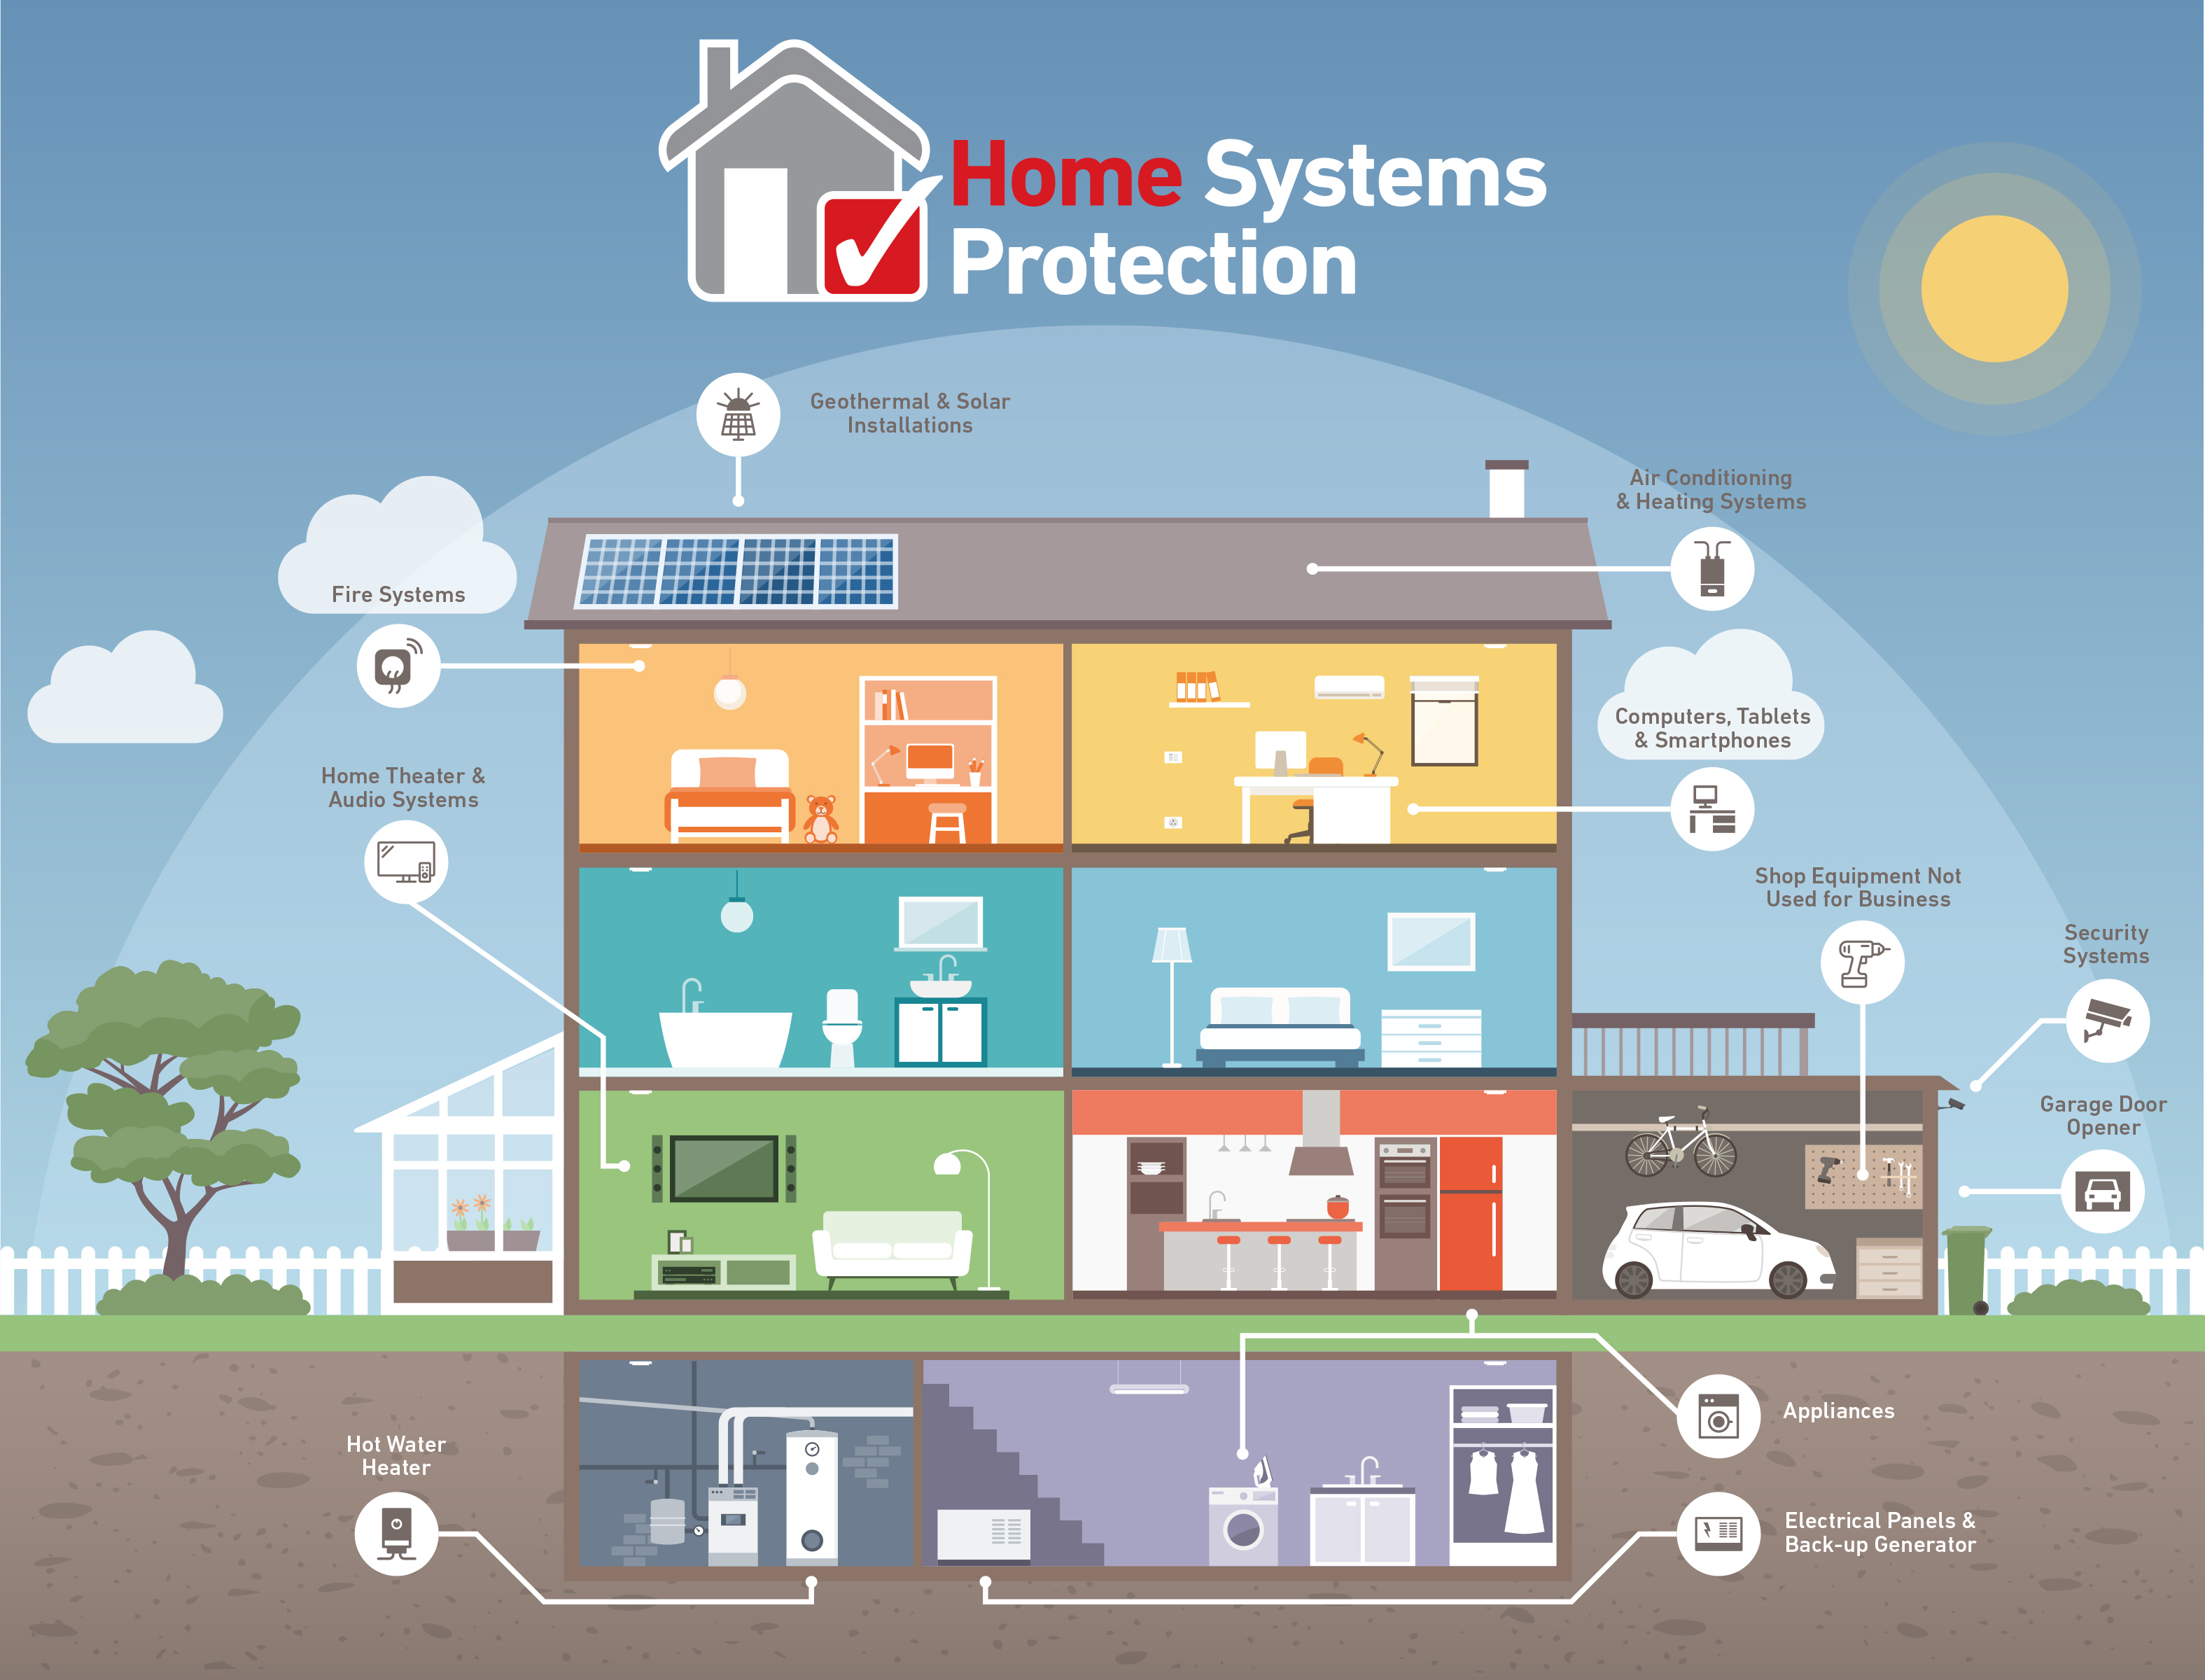 Home Systems Protection Infographic